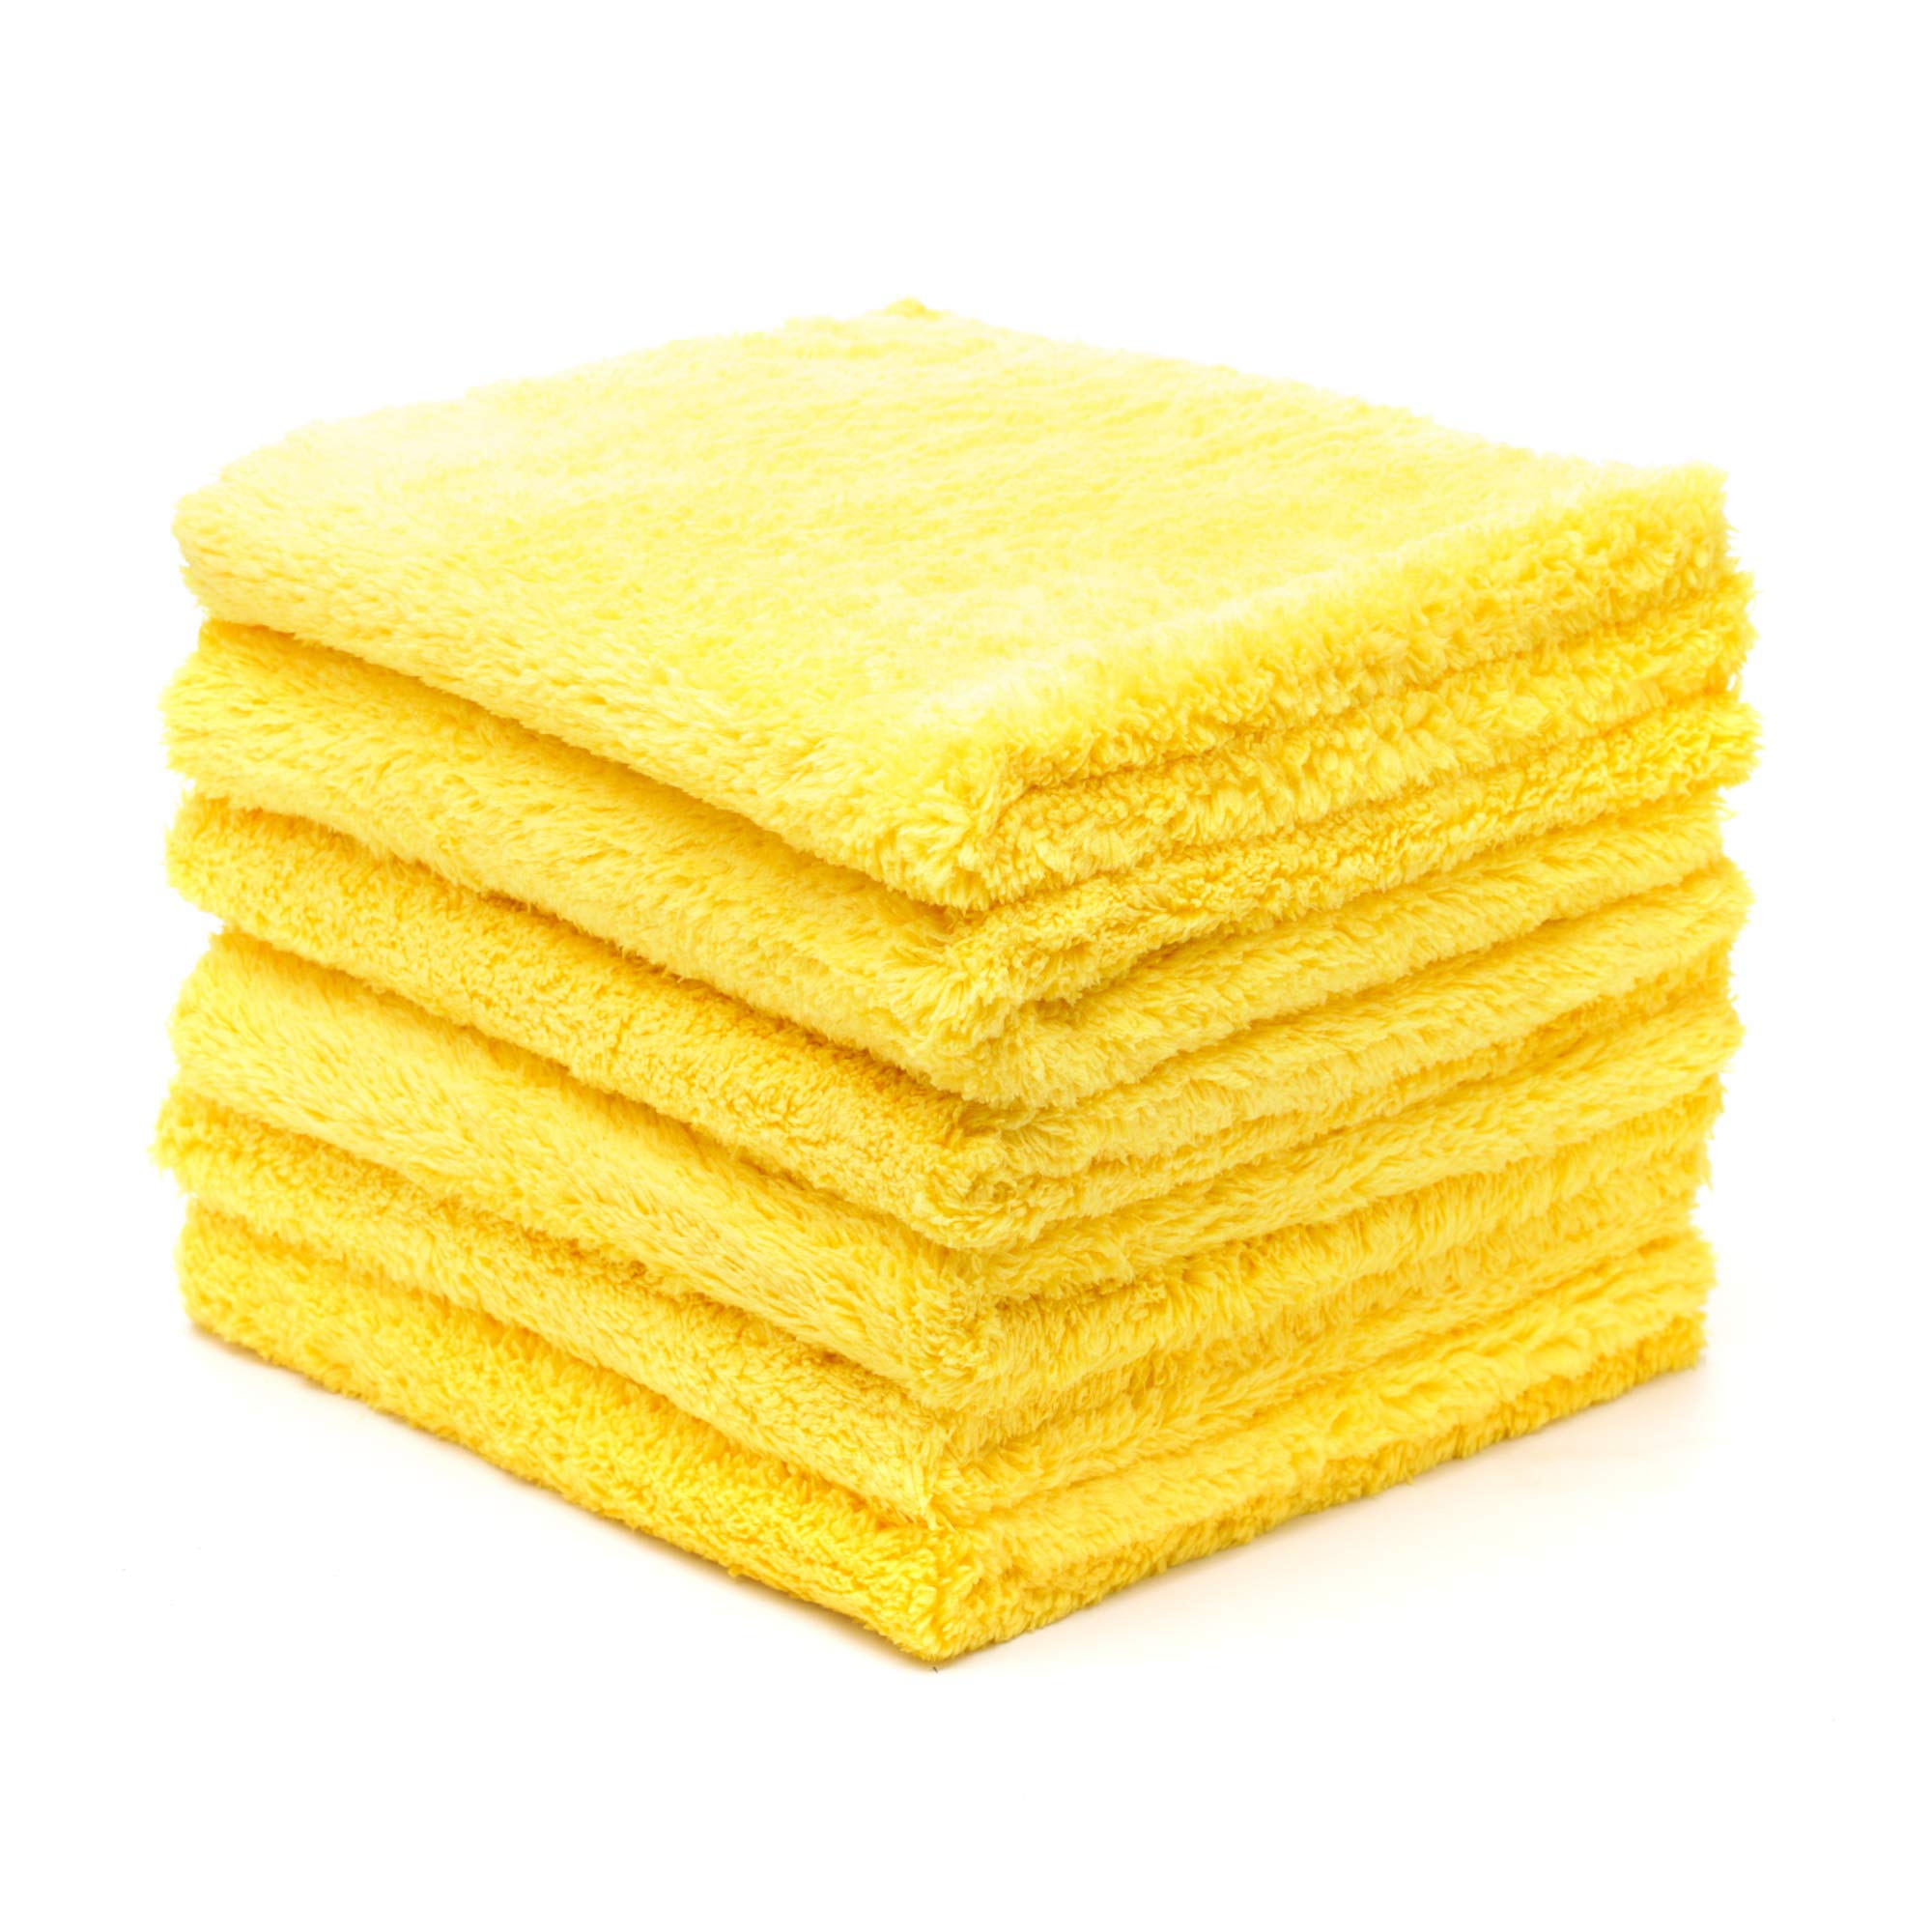 """Kingole Microfiber Cleaning Cloths Rags Pack of 6, All-Purpose Edgeless Strong Absorbent Towels Scratch-Free No Lint or Streaks (Gold, 16""""x16"""")"""